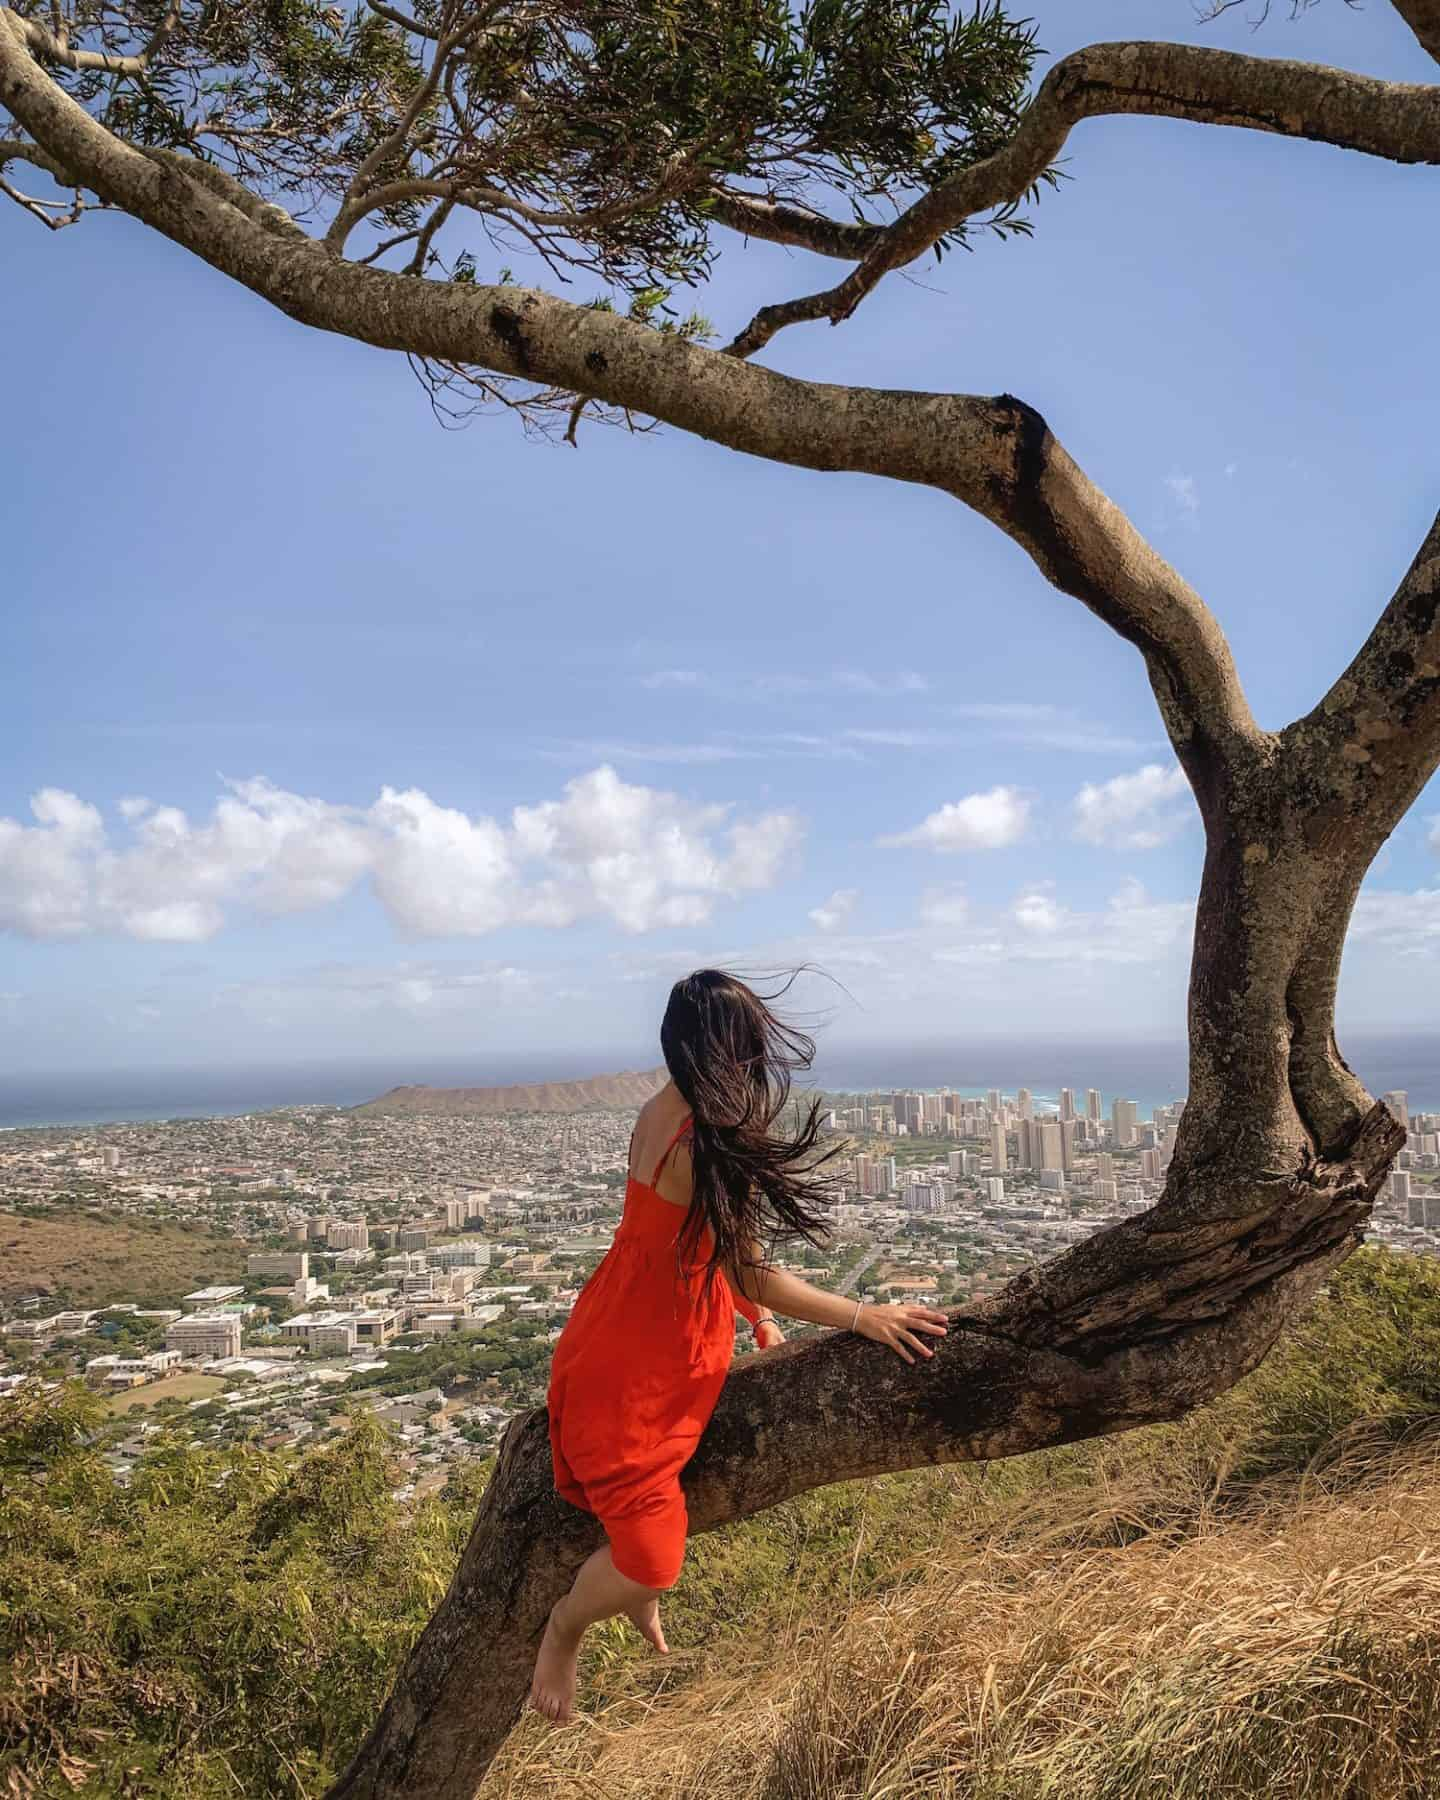 The Tantalus Lookout in Oahu, Hawaii